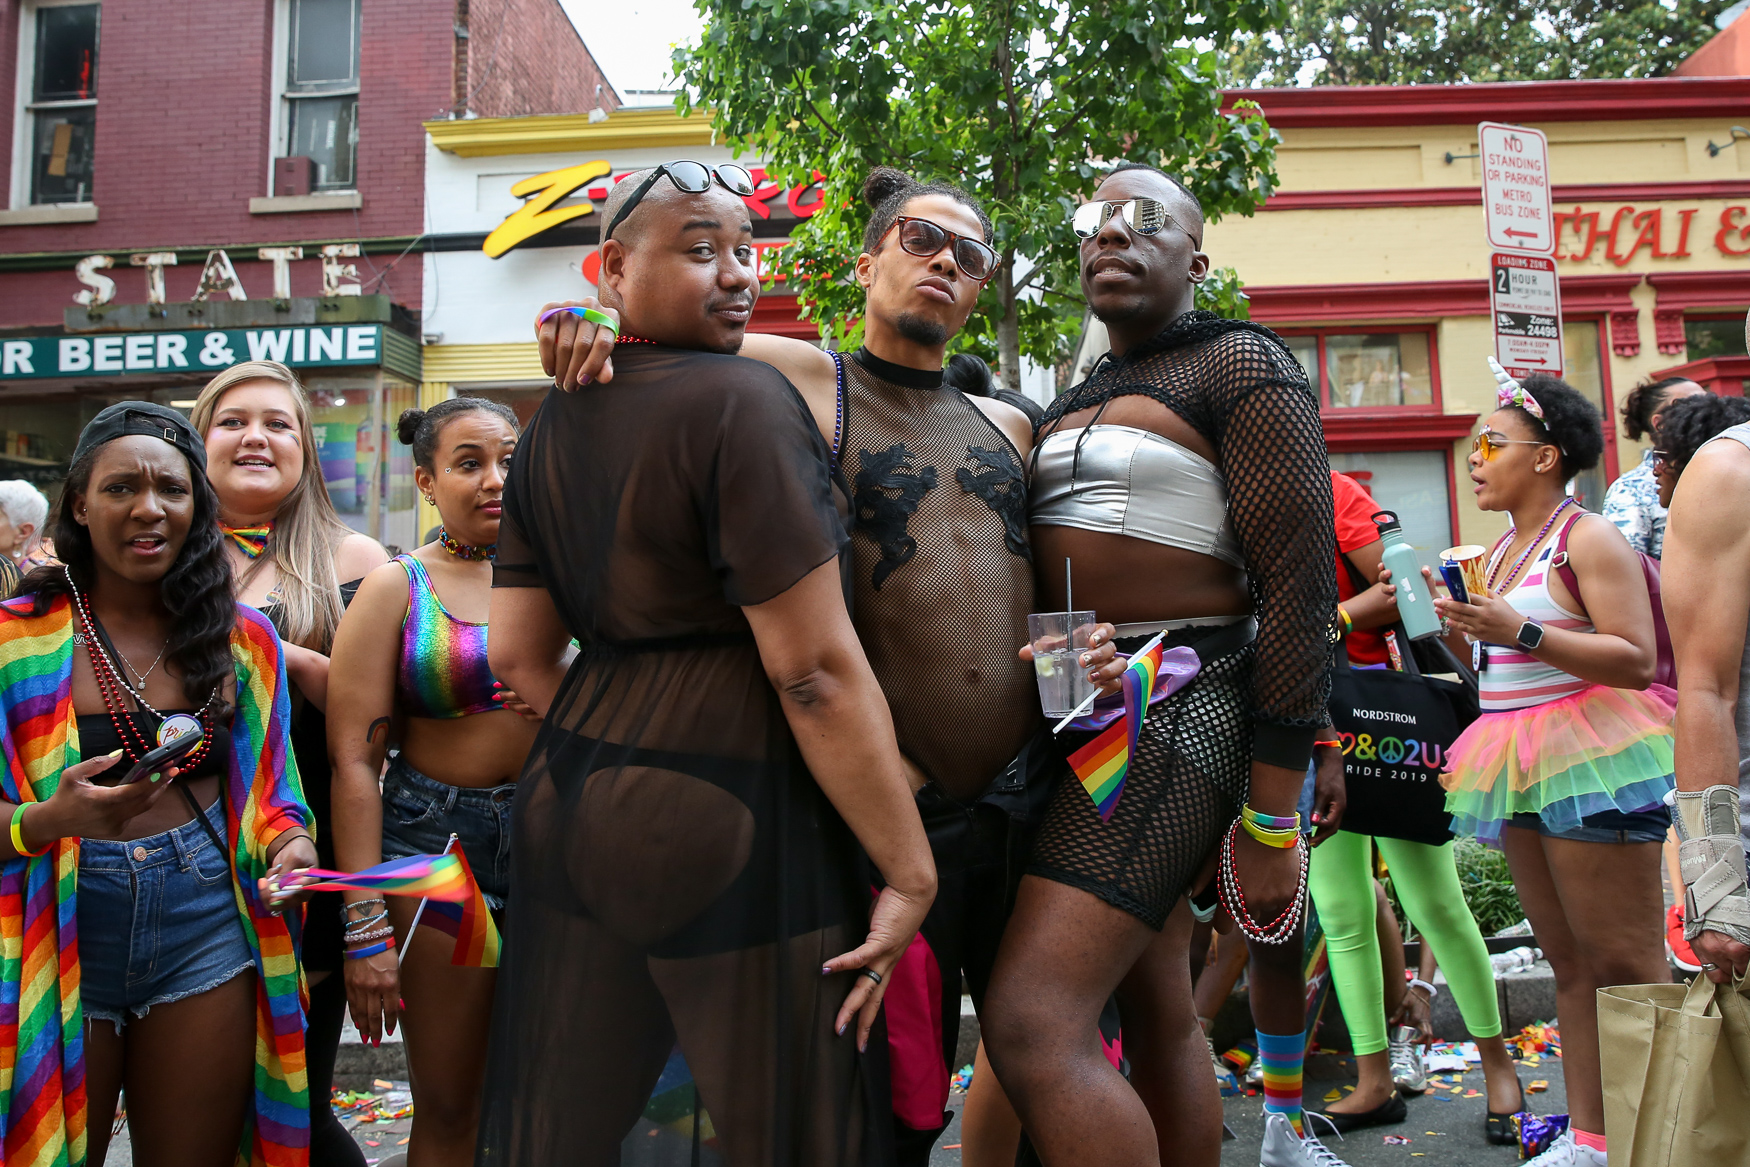 On the opposite side of the spectrum, there were some major goth vibes being served up at Pride.{ } (Amanda Andrade-Rhoades/DC Refined)